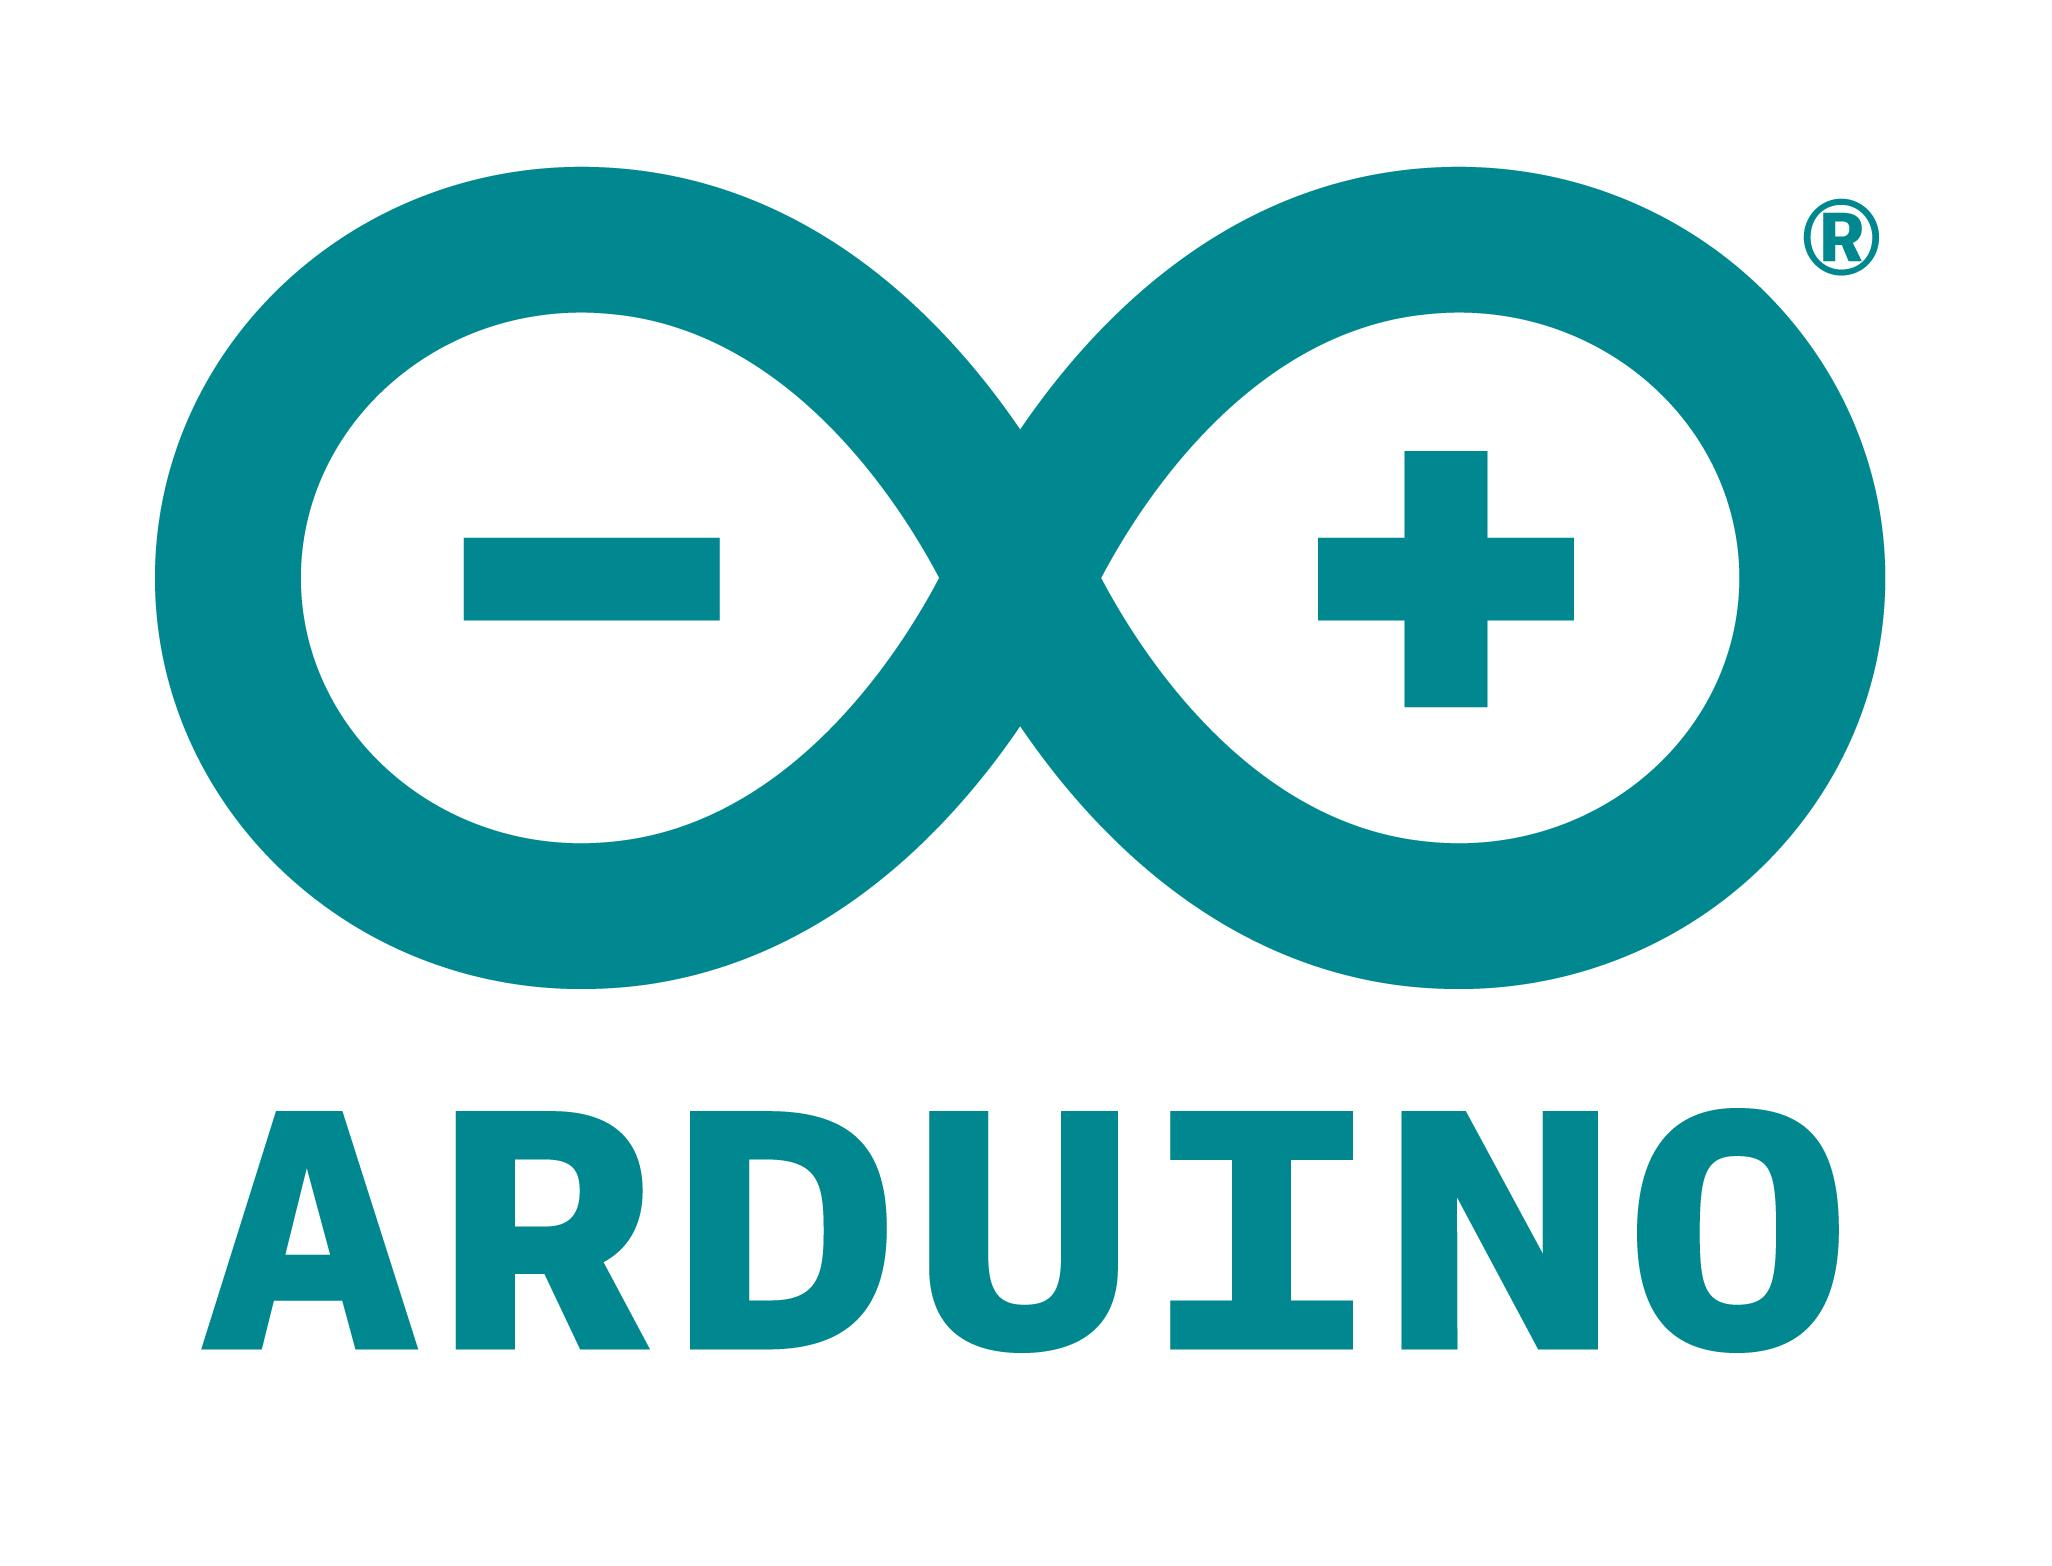 Debugging with Arduino